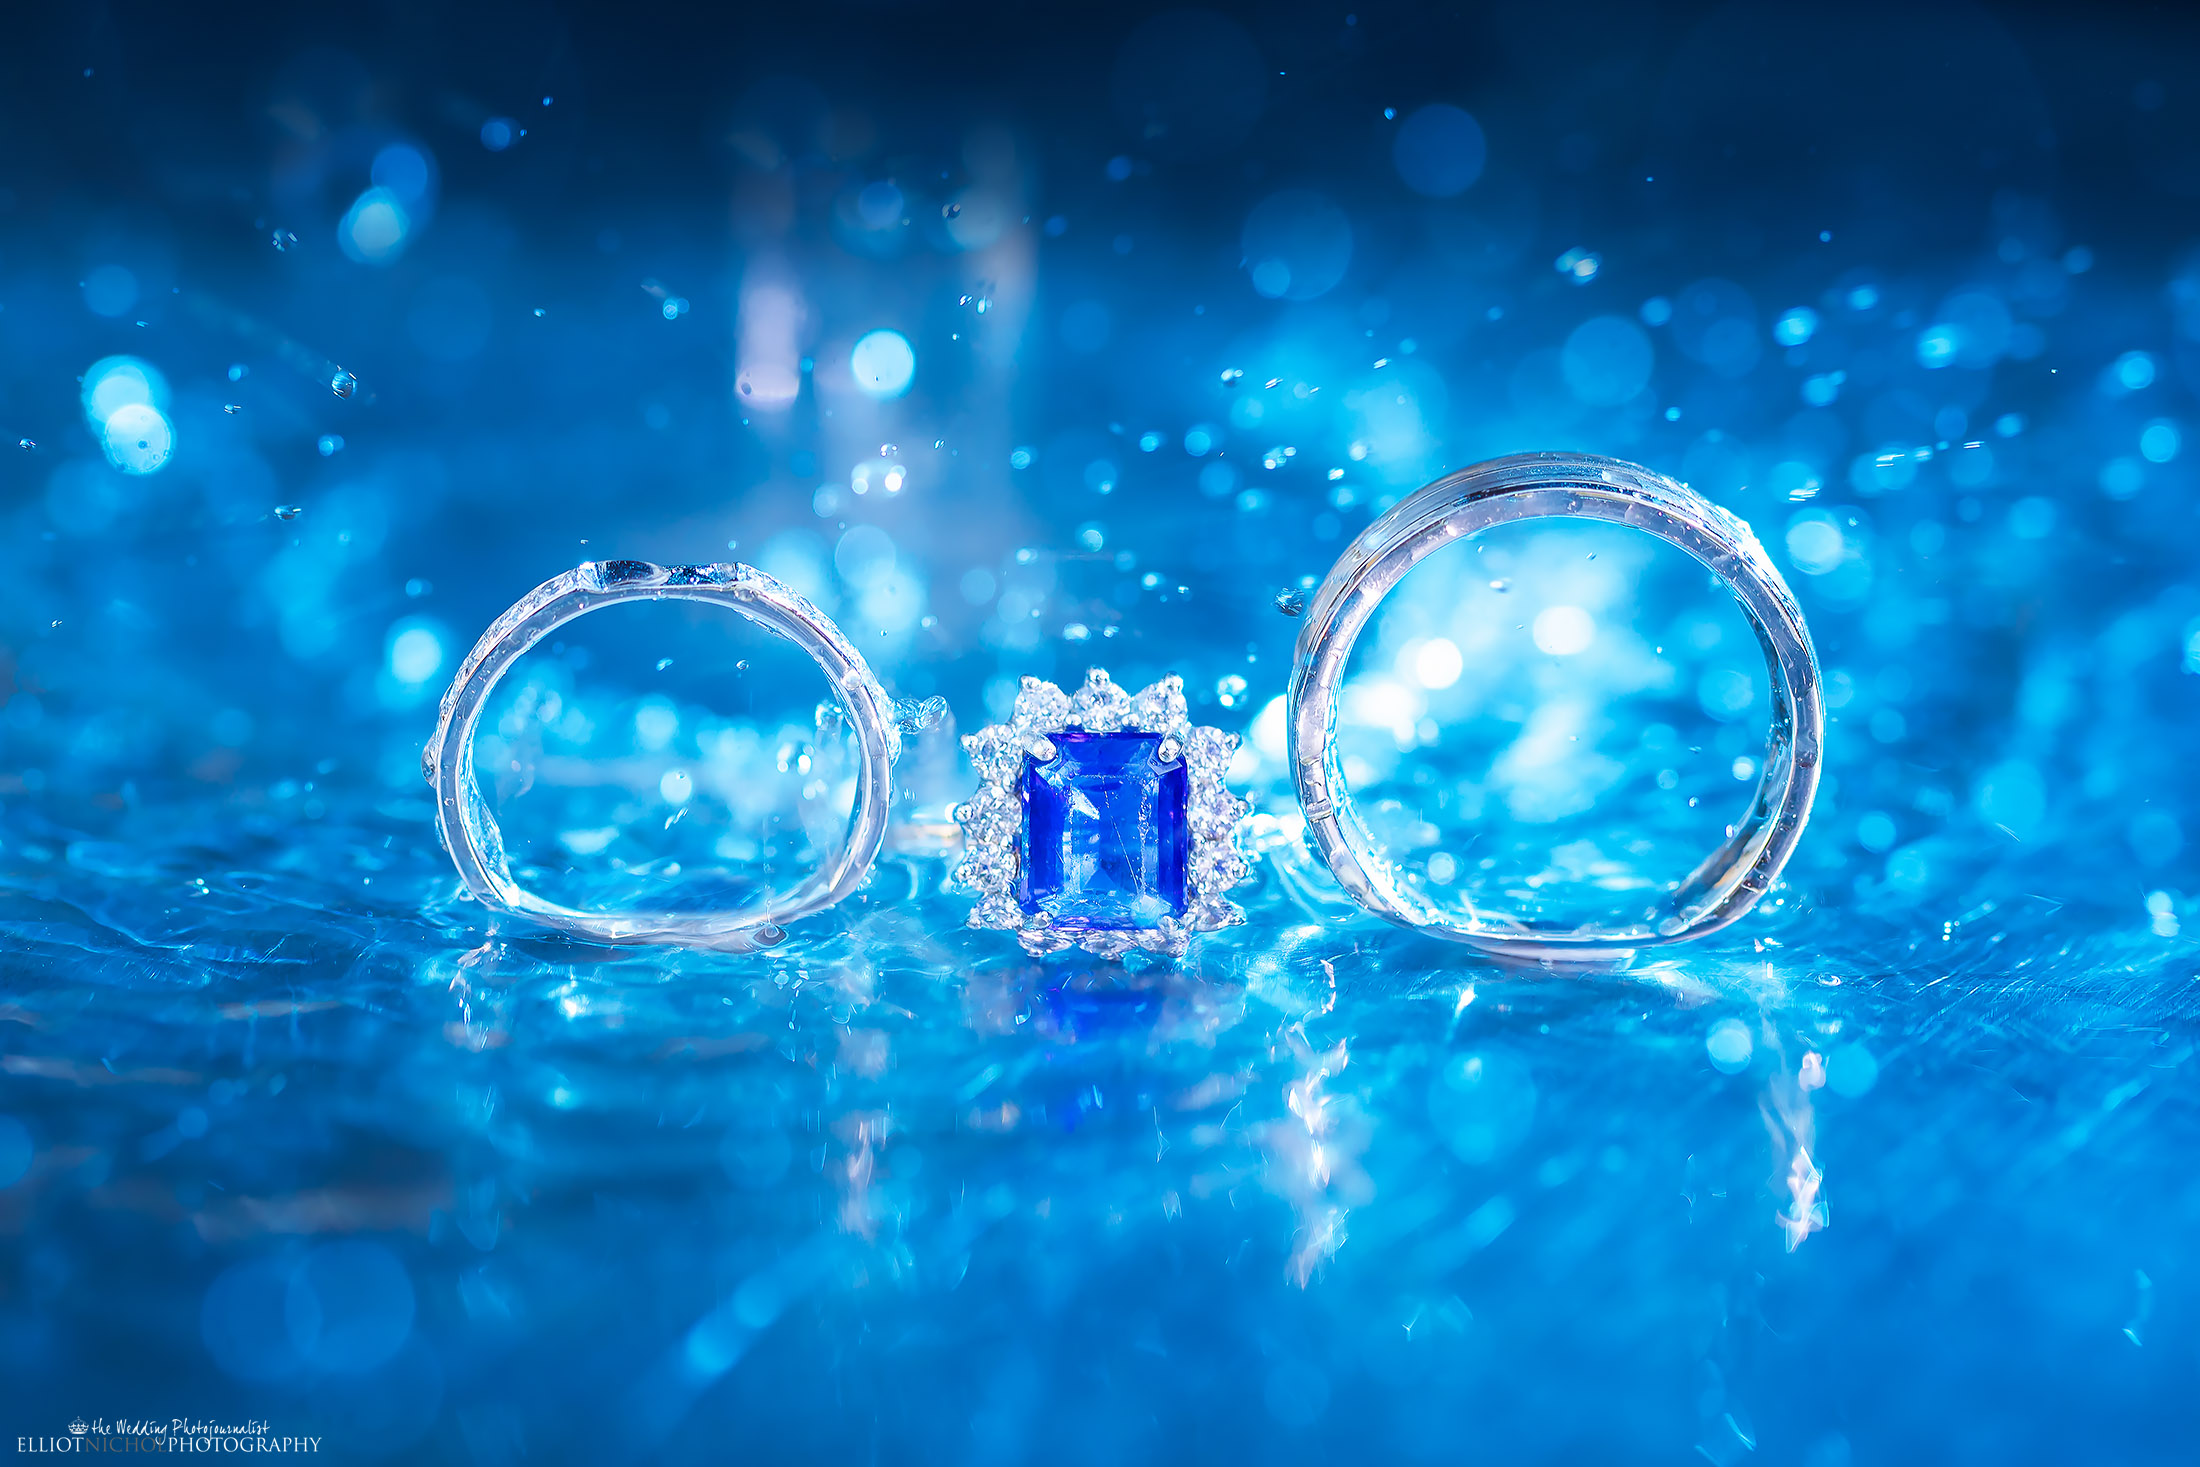 Wedding ring details with water. Creative wedding day photography by Elliot Nichol Photography.